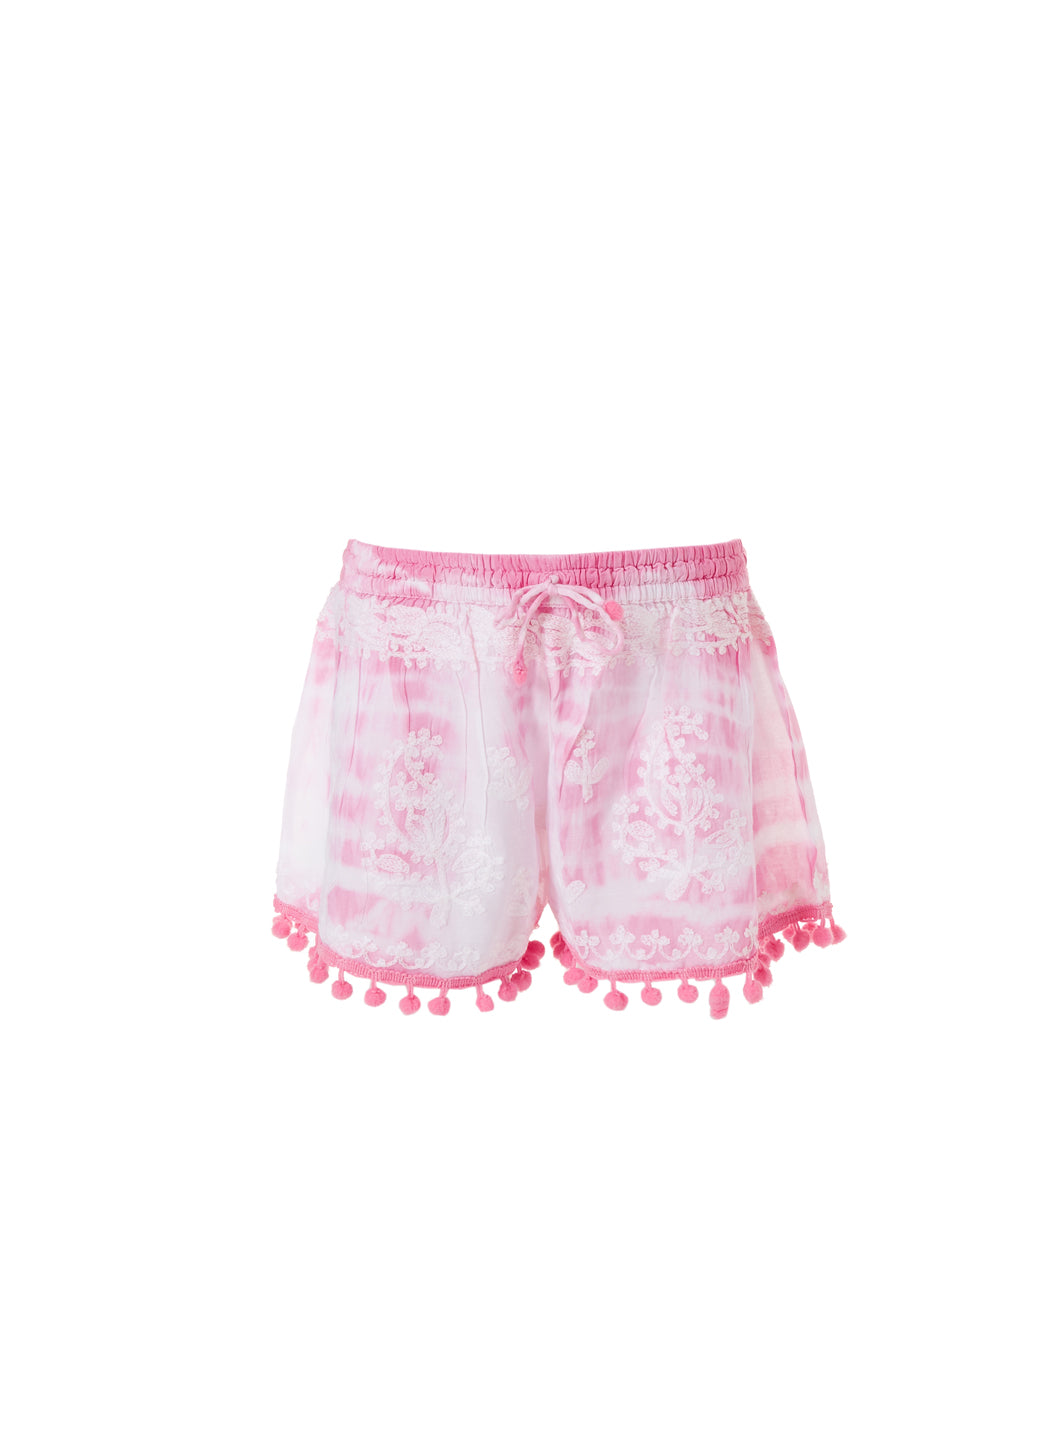 Baby Shorts Pale Pink Tie Dye